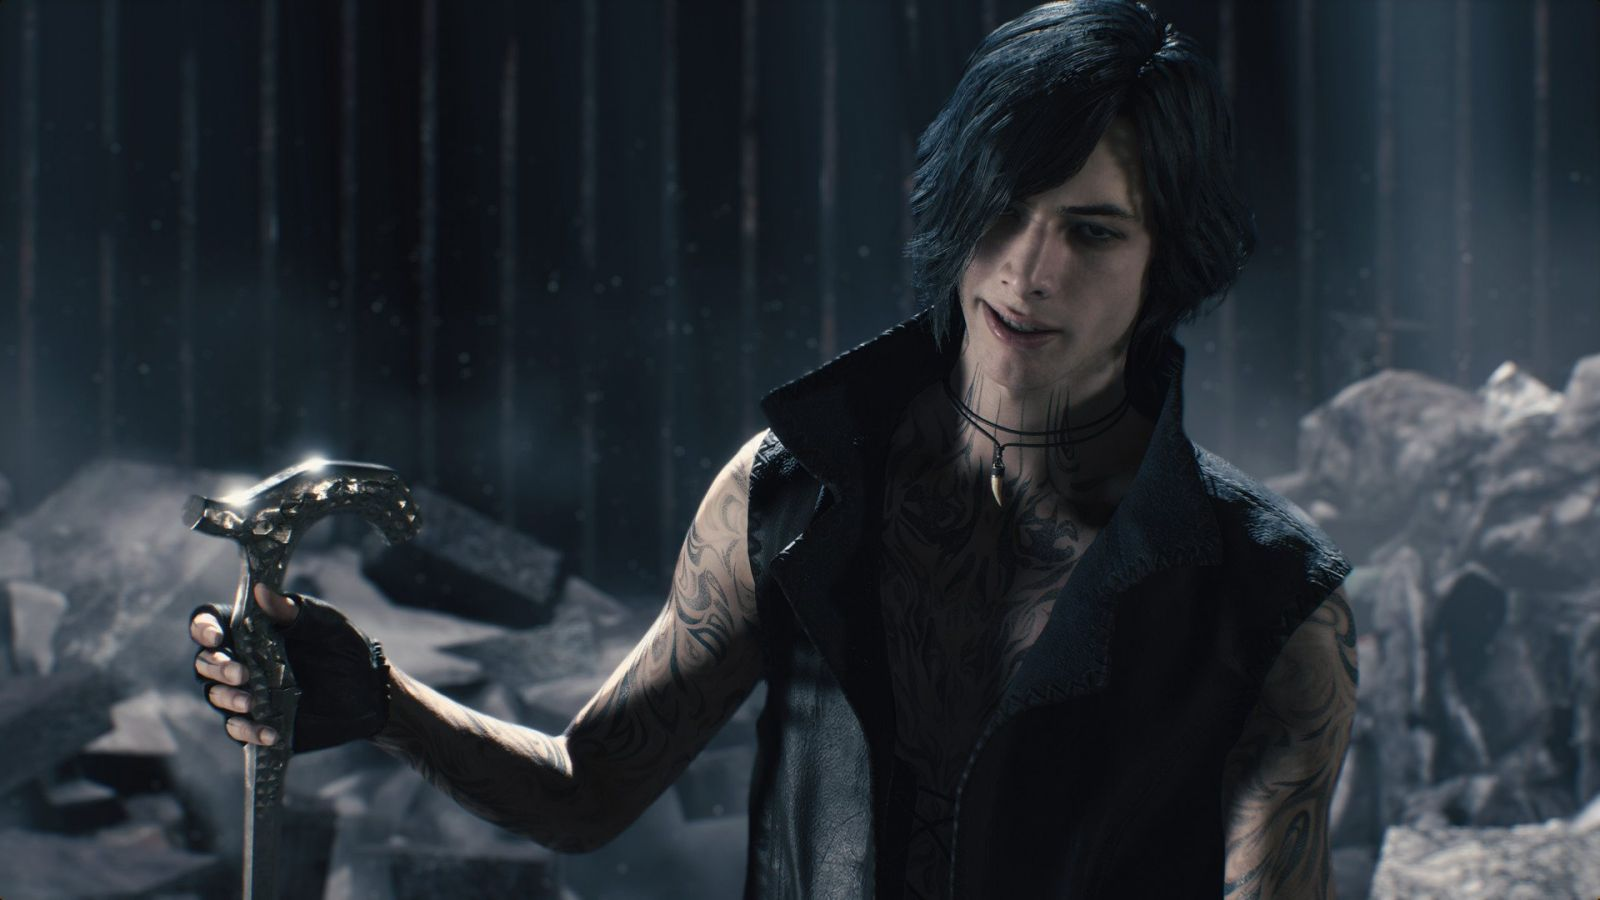 Devil May Cry 5 on PS4.